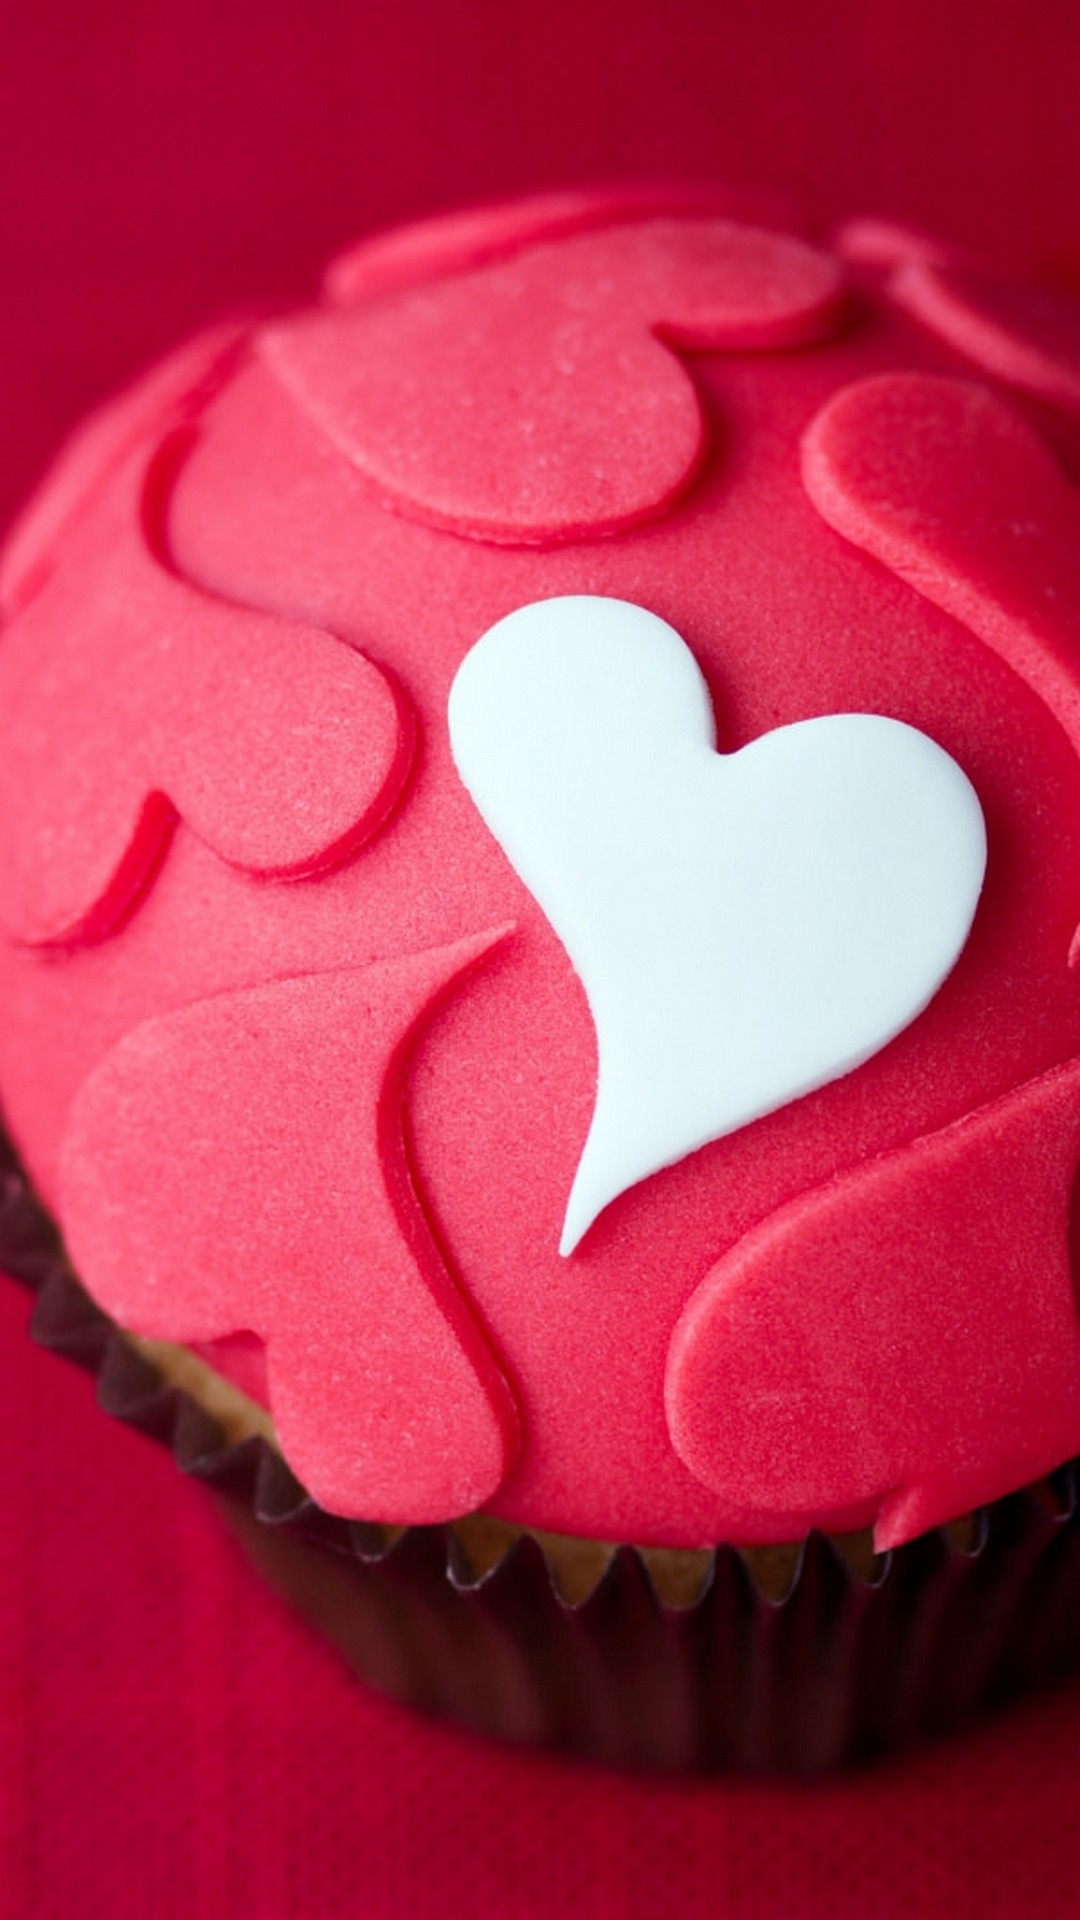 Cupcake Wallpaper Cute Girly For Android Superb Profile For Whats App Dp 1080x1920 Download Hd Wallpaper Wallpapertip